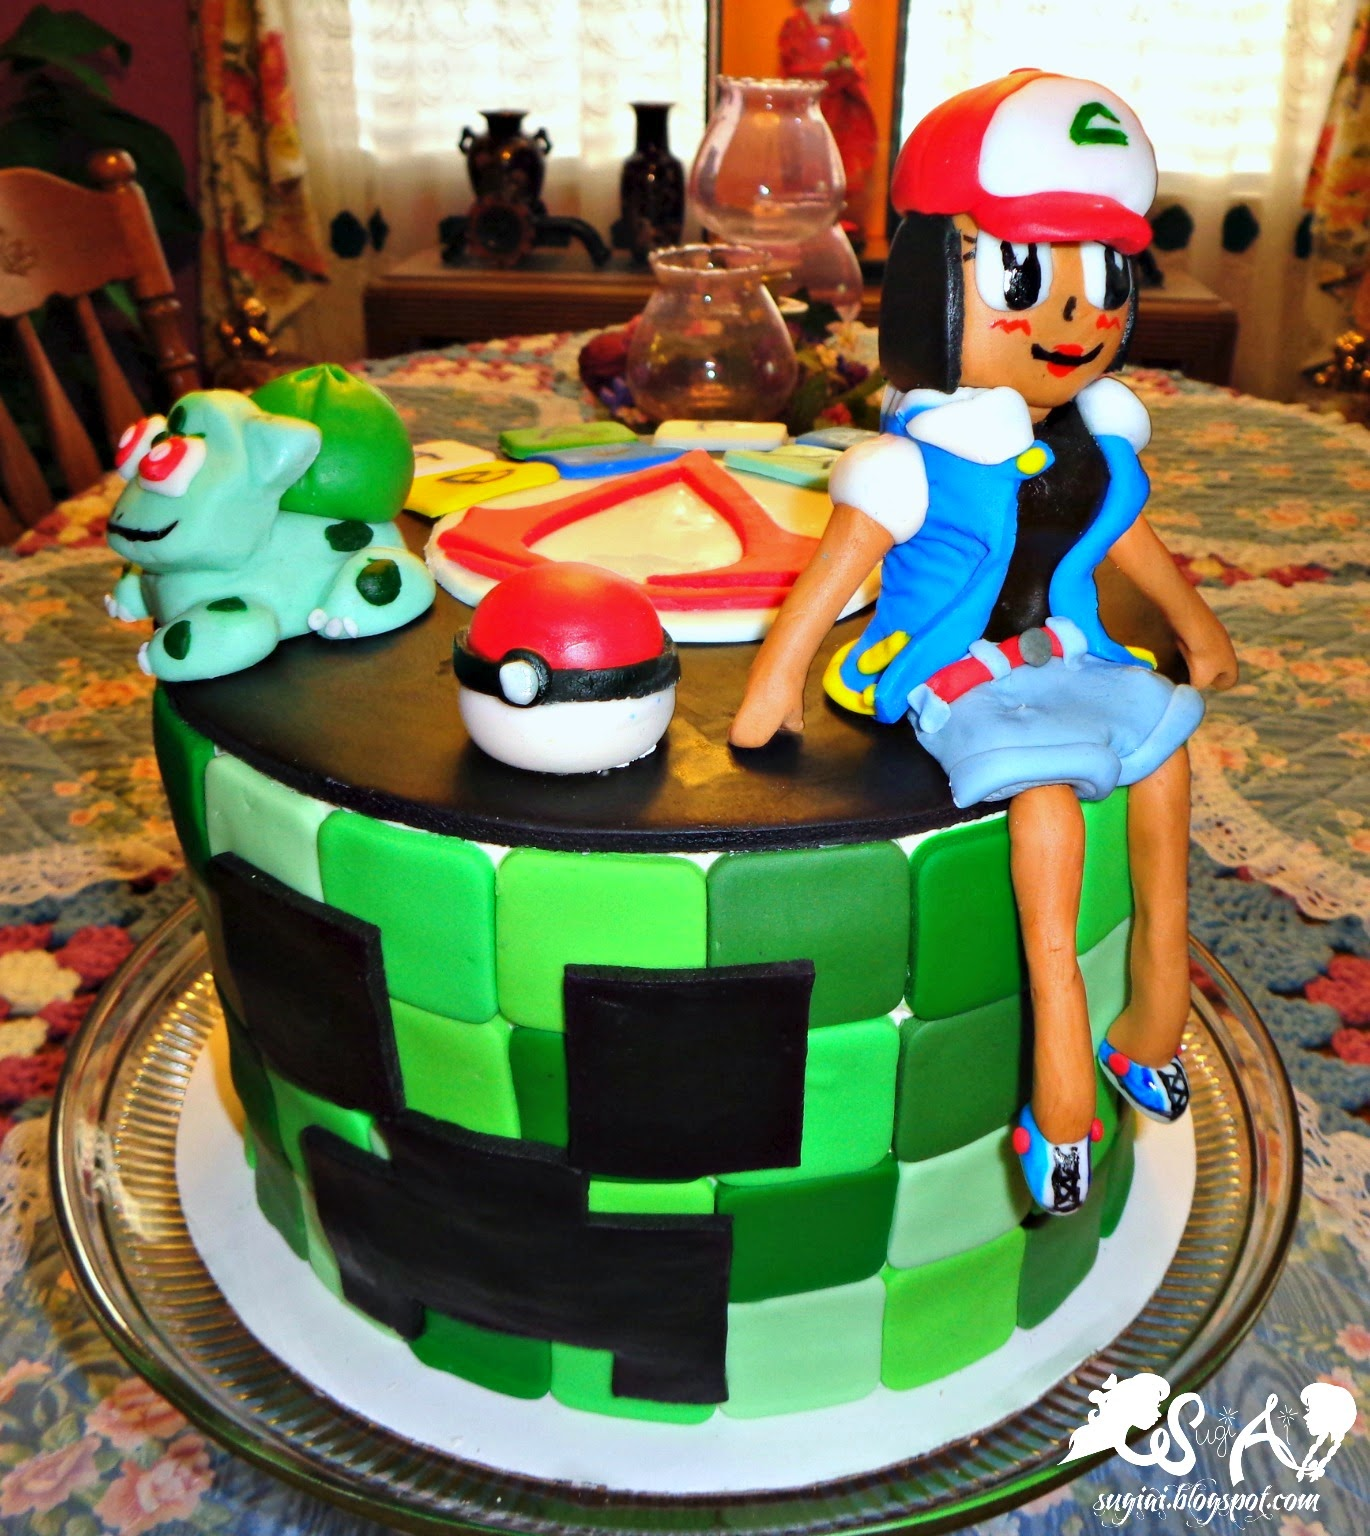 SugiAi: Happy St. Patrick's Day And A Video Game Birthday Cake